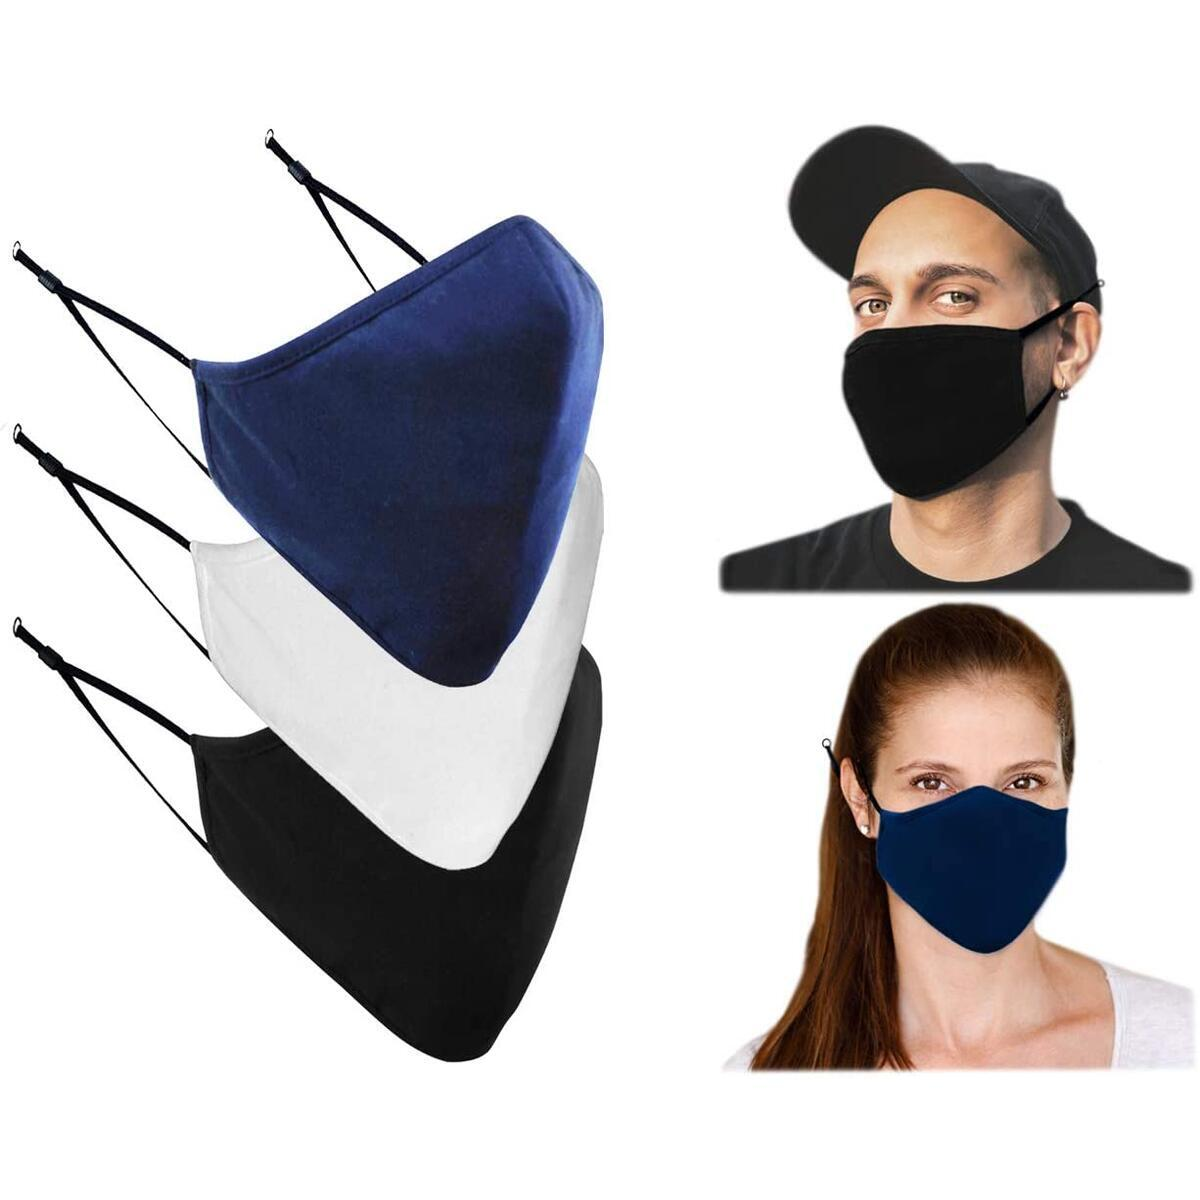 Cotton Washable Cloth Face Mask - Adjustable and Reusable 3 Layer Protective Fabric Face Cover